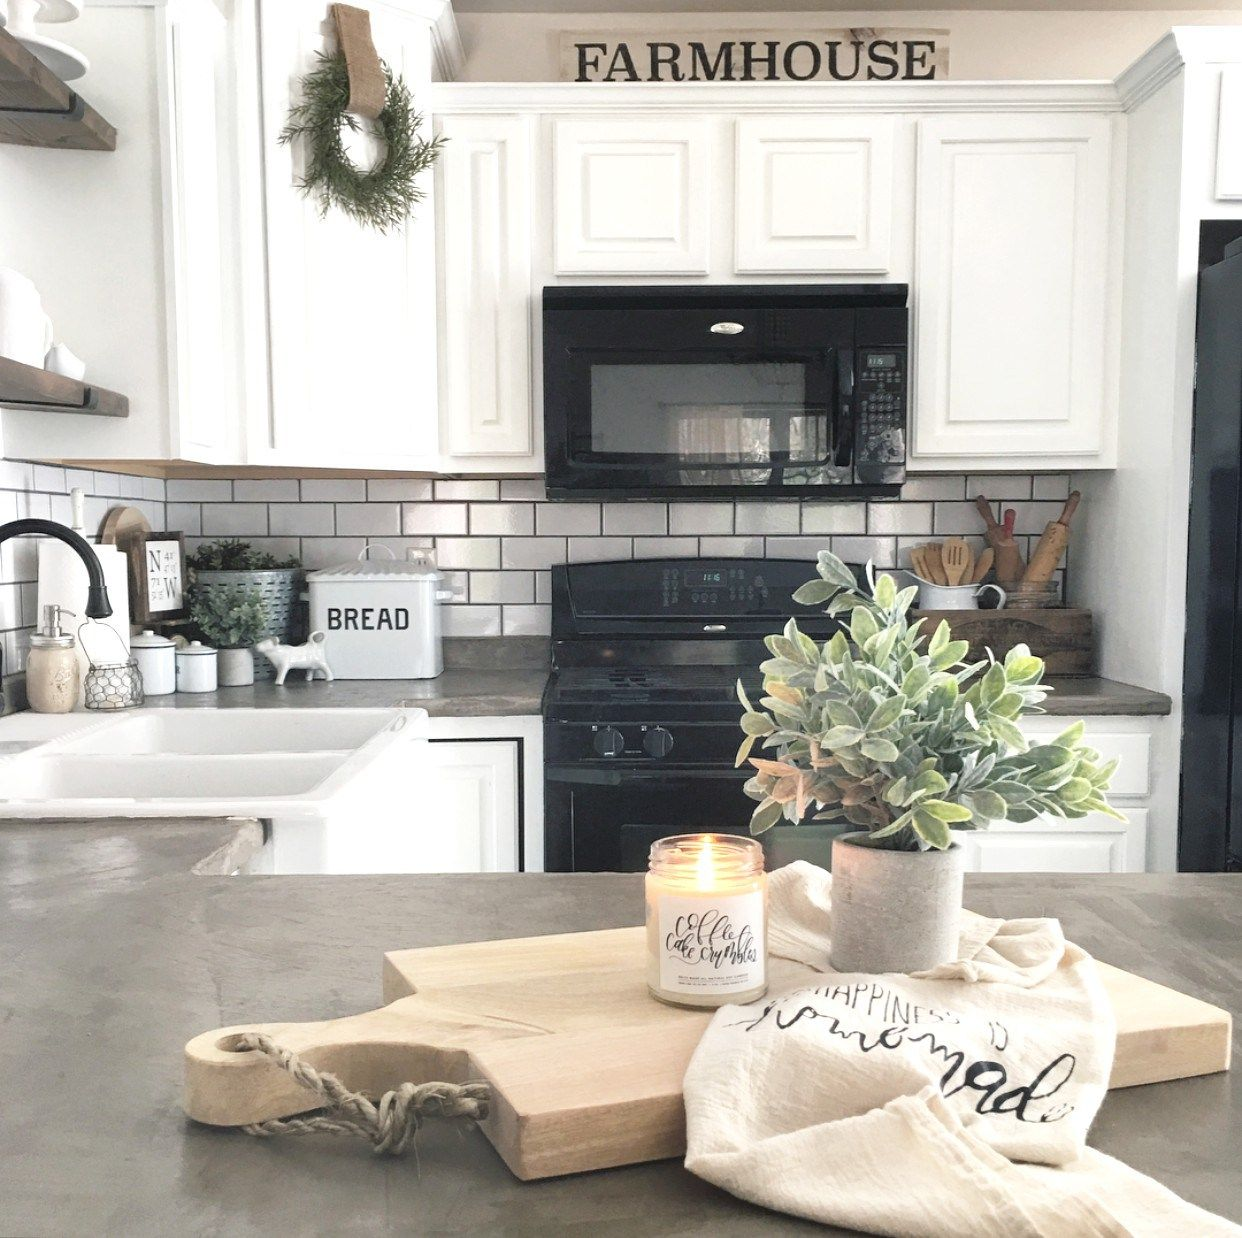 Farmhouse kitchen the little white farmhouse blog for How to decorate a kitchen counter